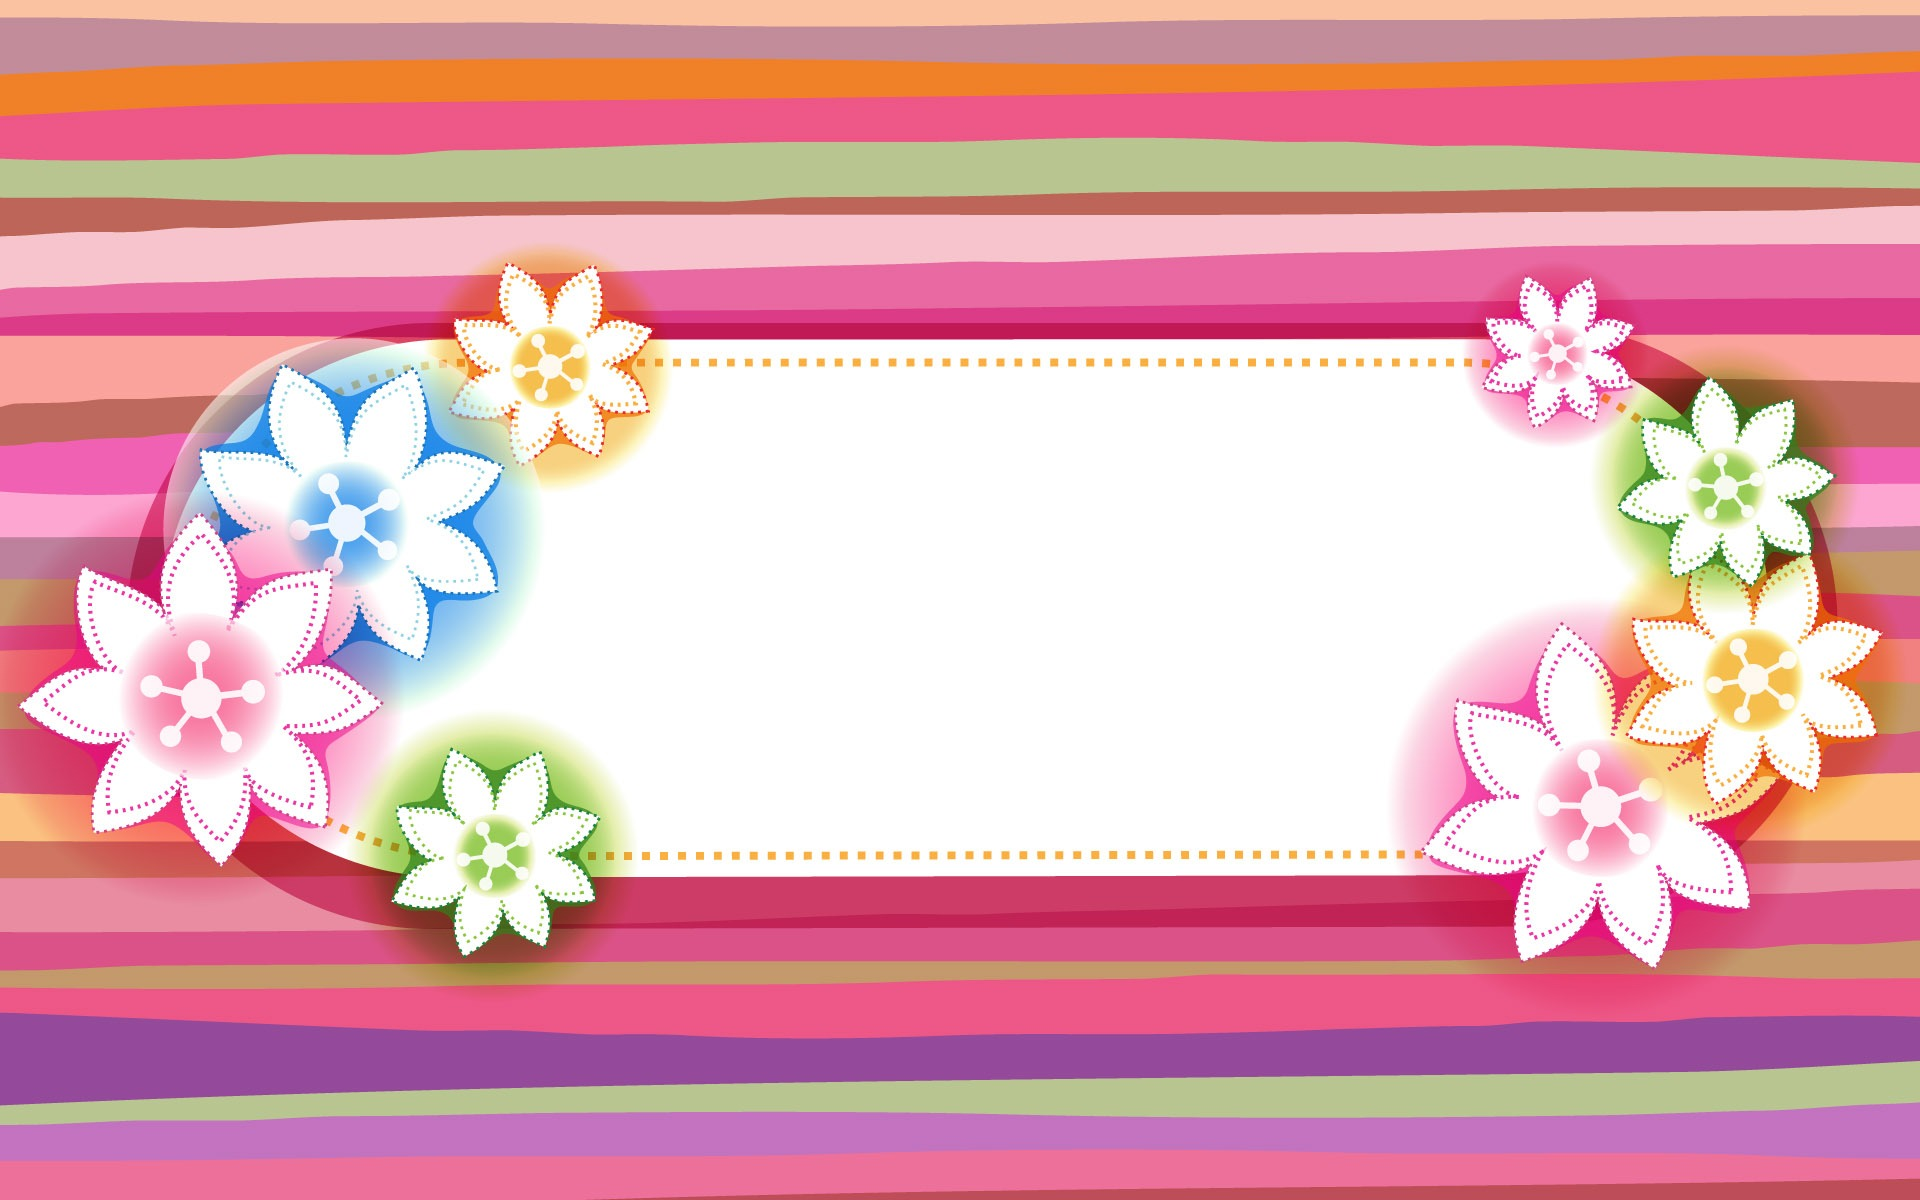 Colorful Vector Background Wallpaper (3) #5